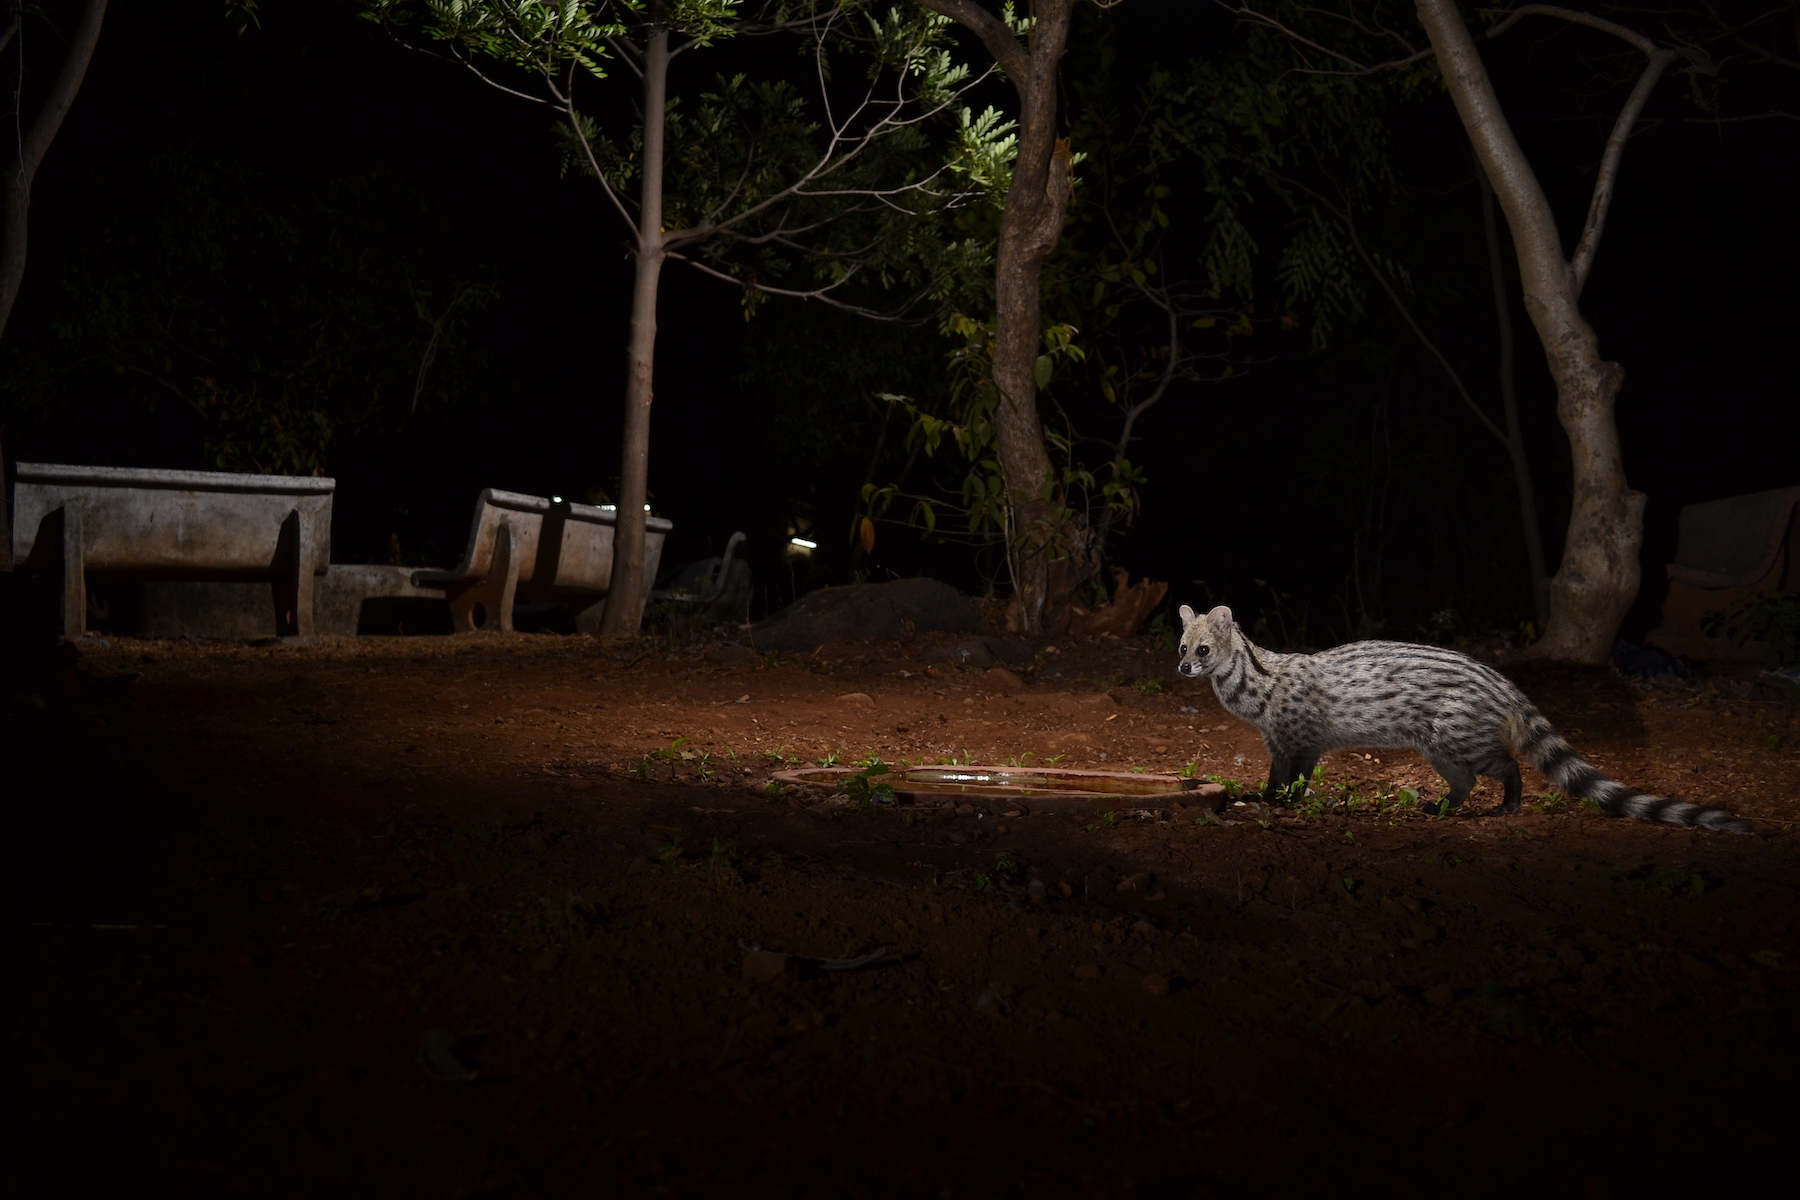 In addition to leopards, several mammals are residents of Aarey: rhesus macaques, spotted deer, flying fox and small Indian civets, like this one pictured at an artificial watering hole. Photo: Ranjeet Jadhav